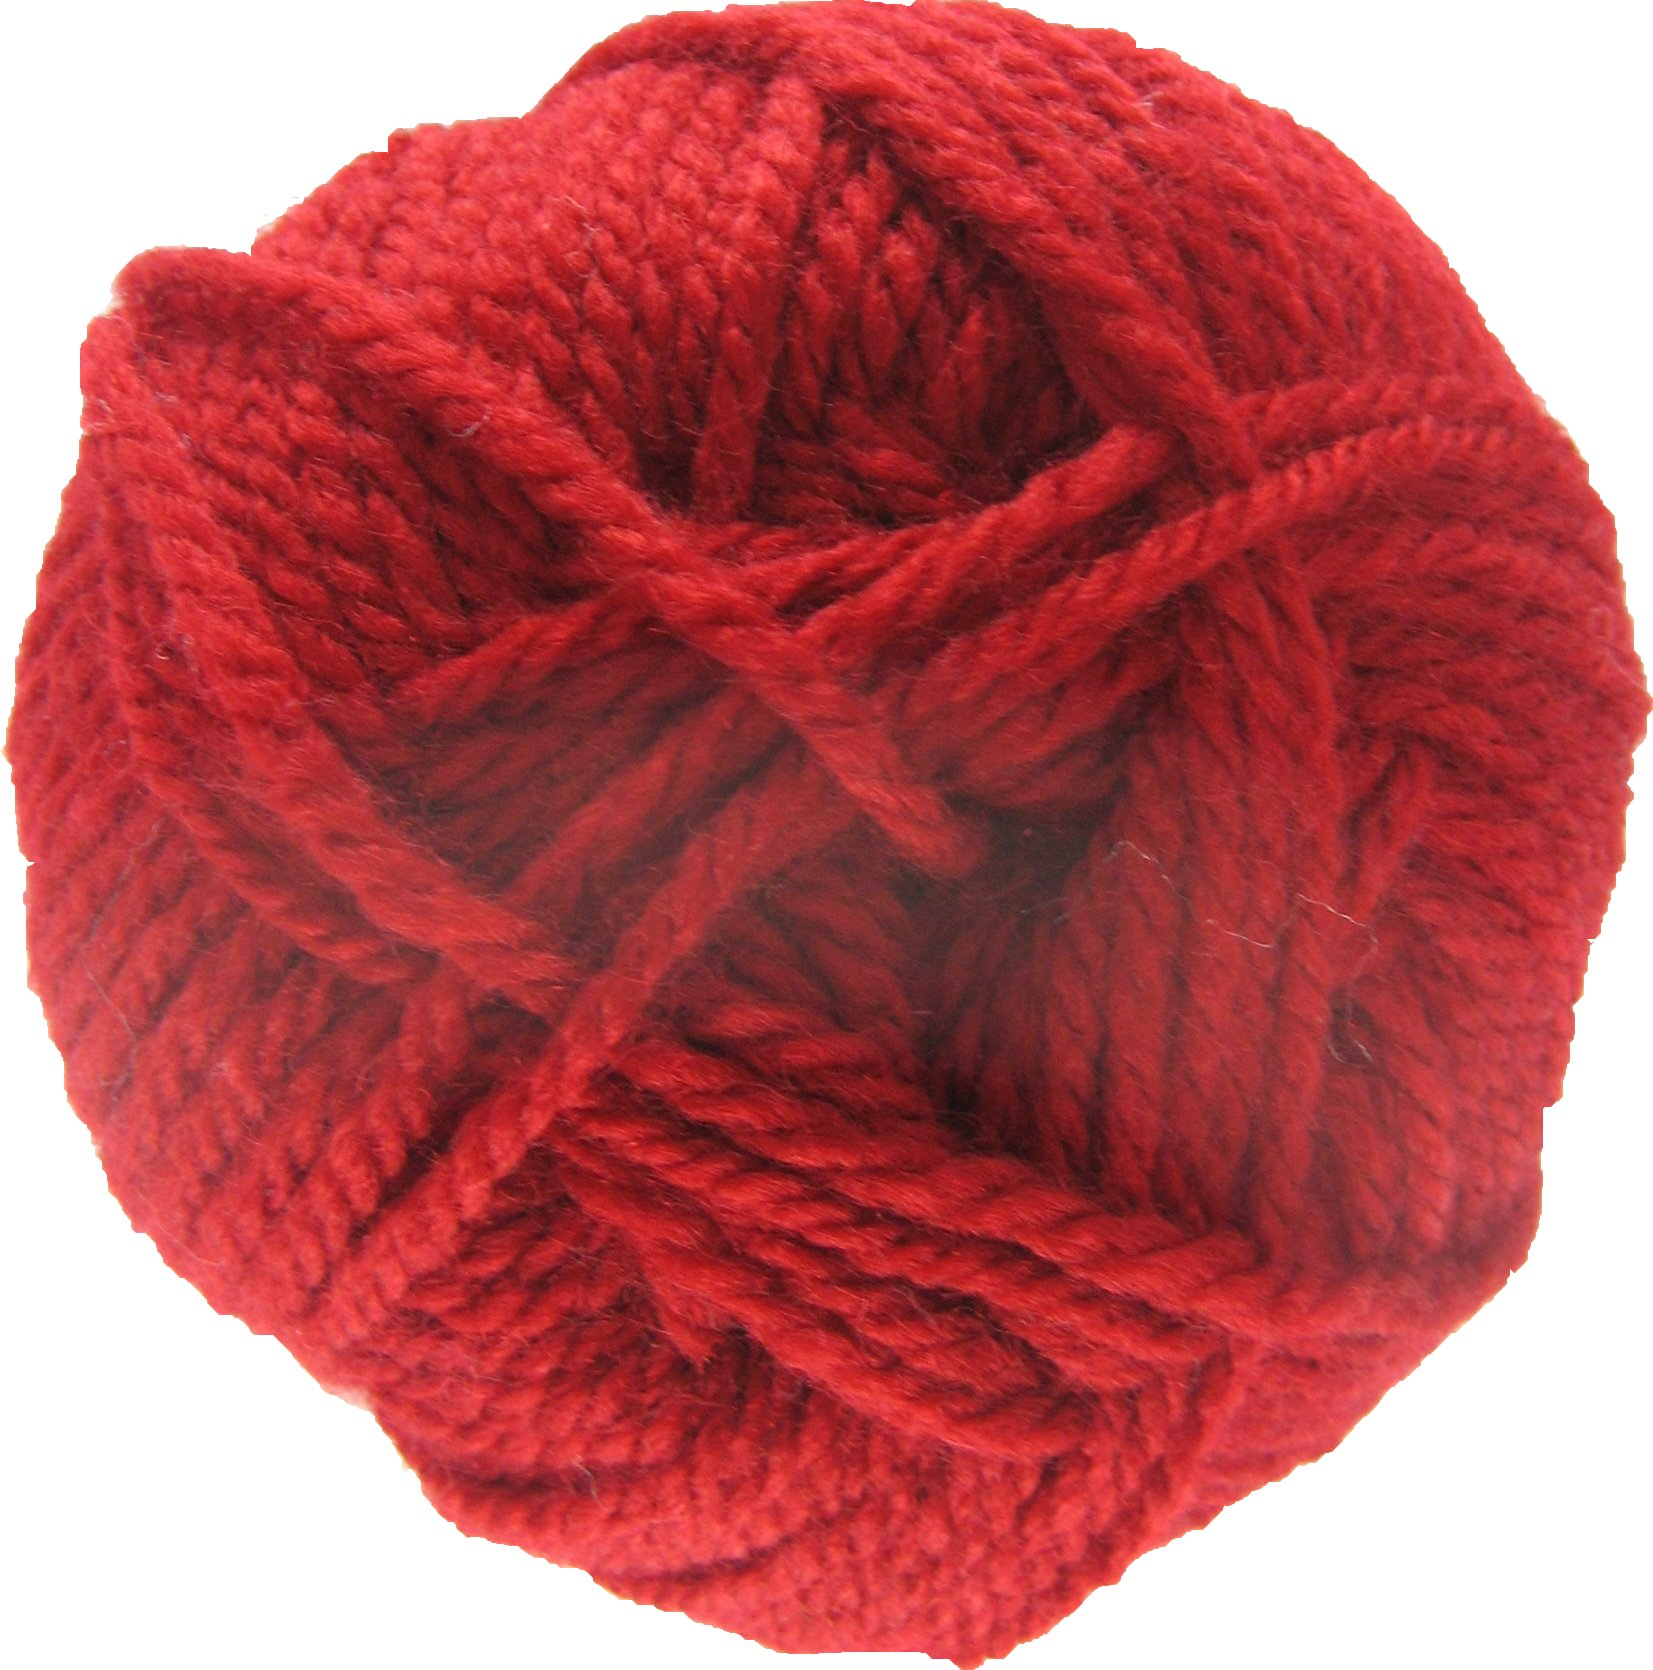 Knitting Yarn : ... description stylecraft life 4ply knitting yarn colour red cardinal